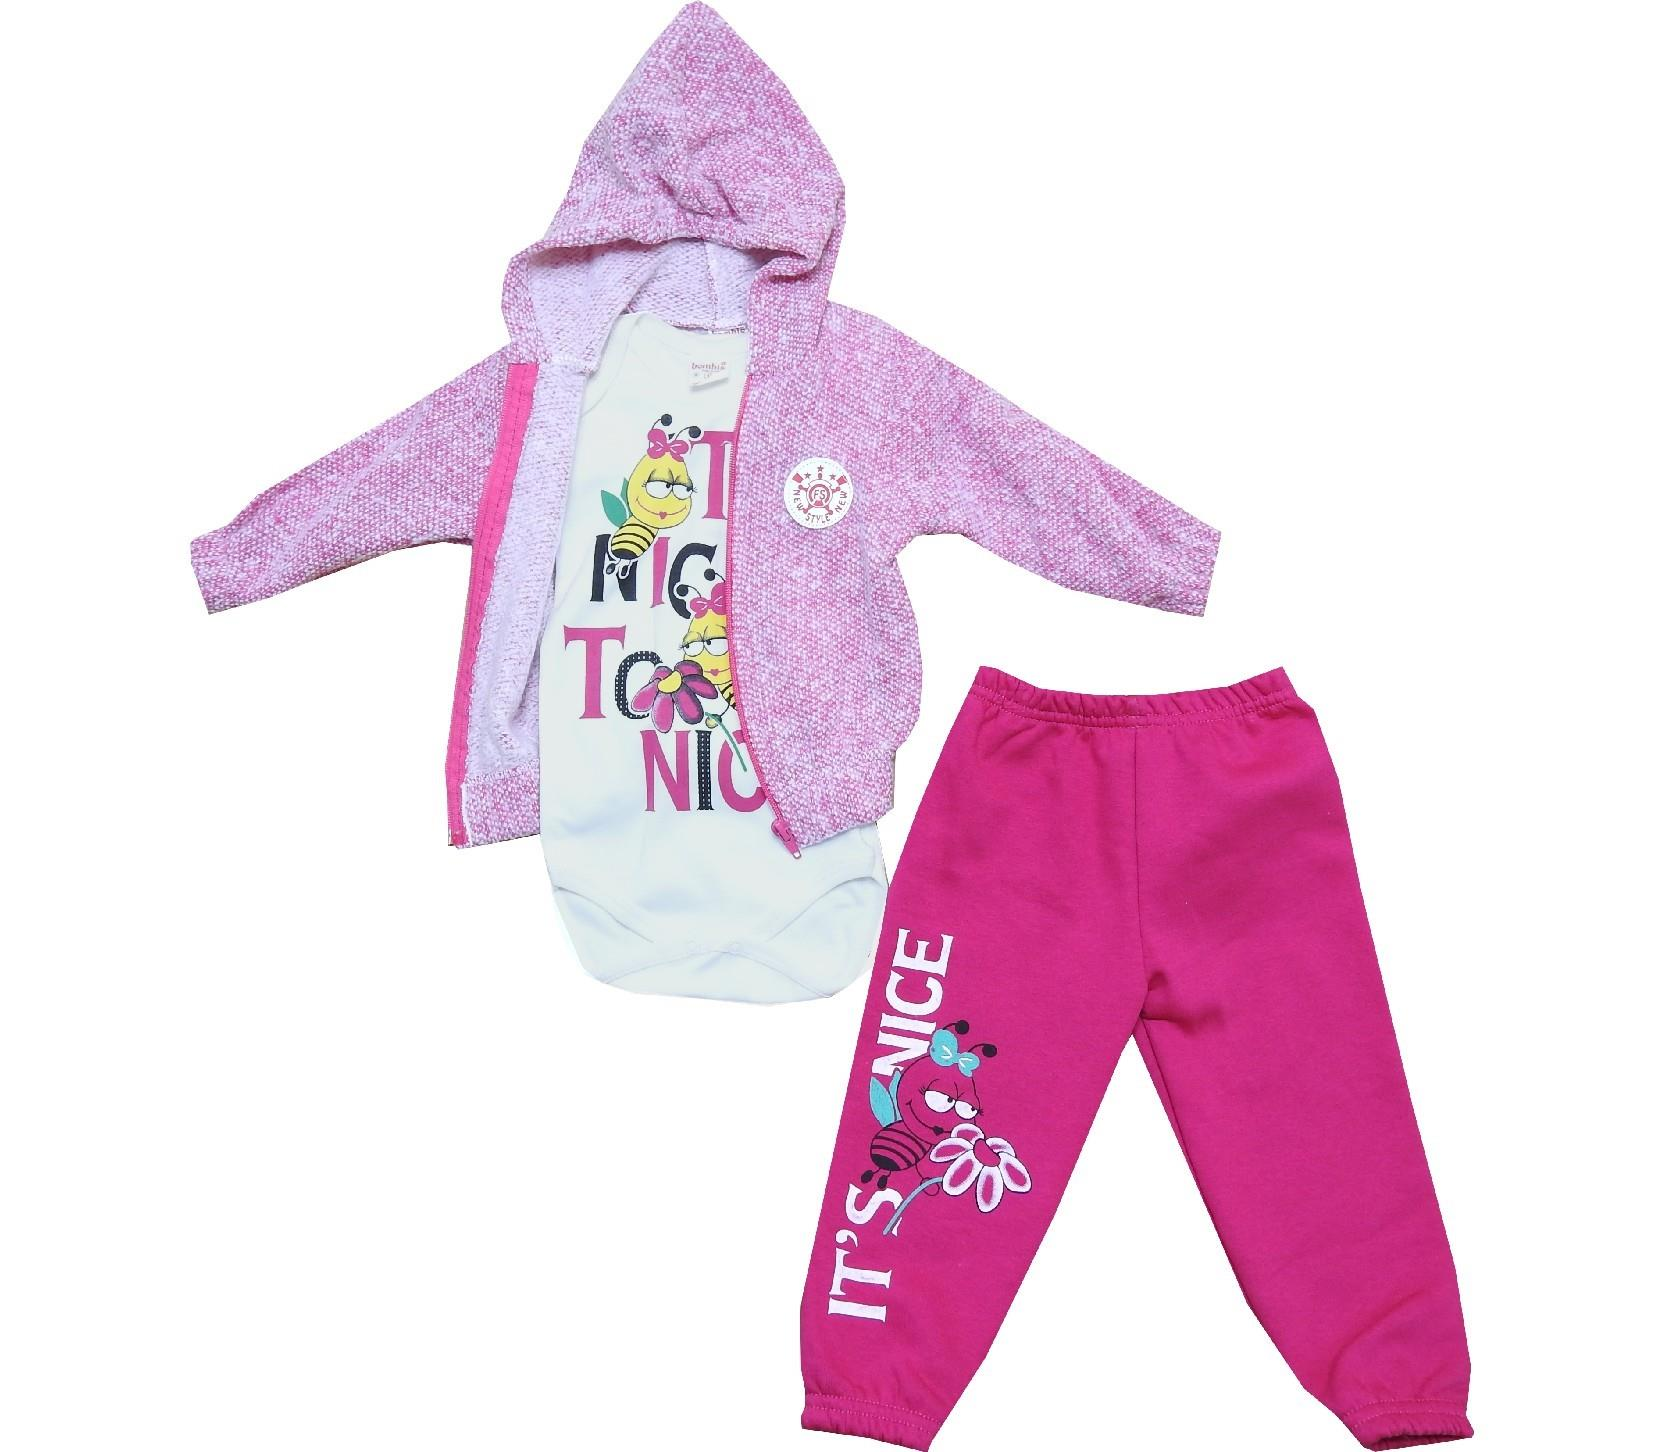 Wholesale printed design hooded sweatshirt, bodysuit and trouser triple set for kids (1-2 age)